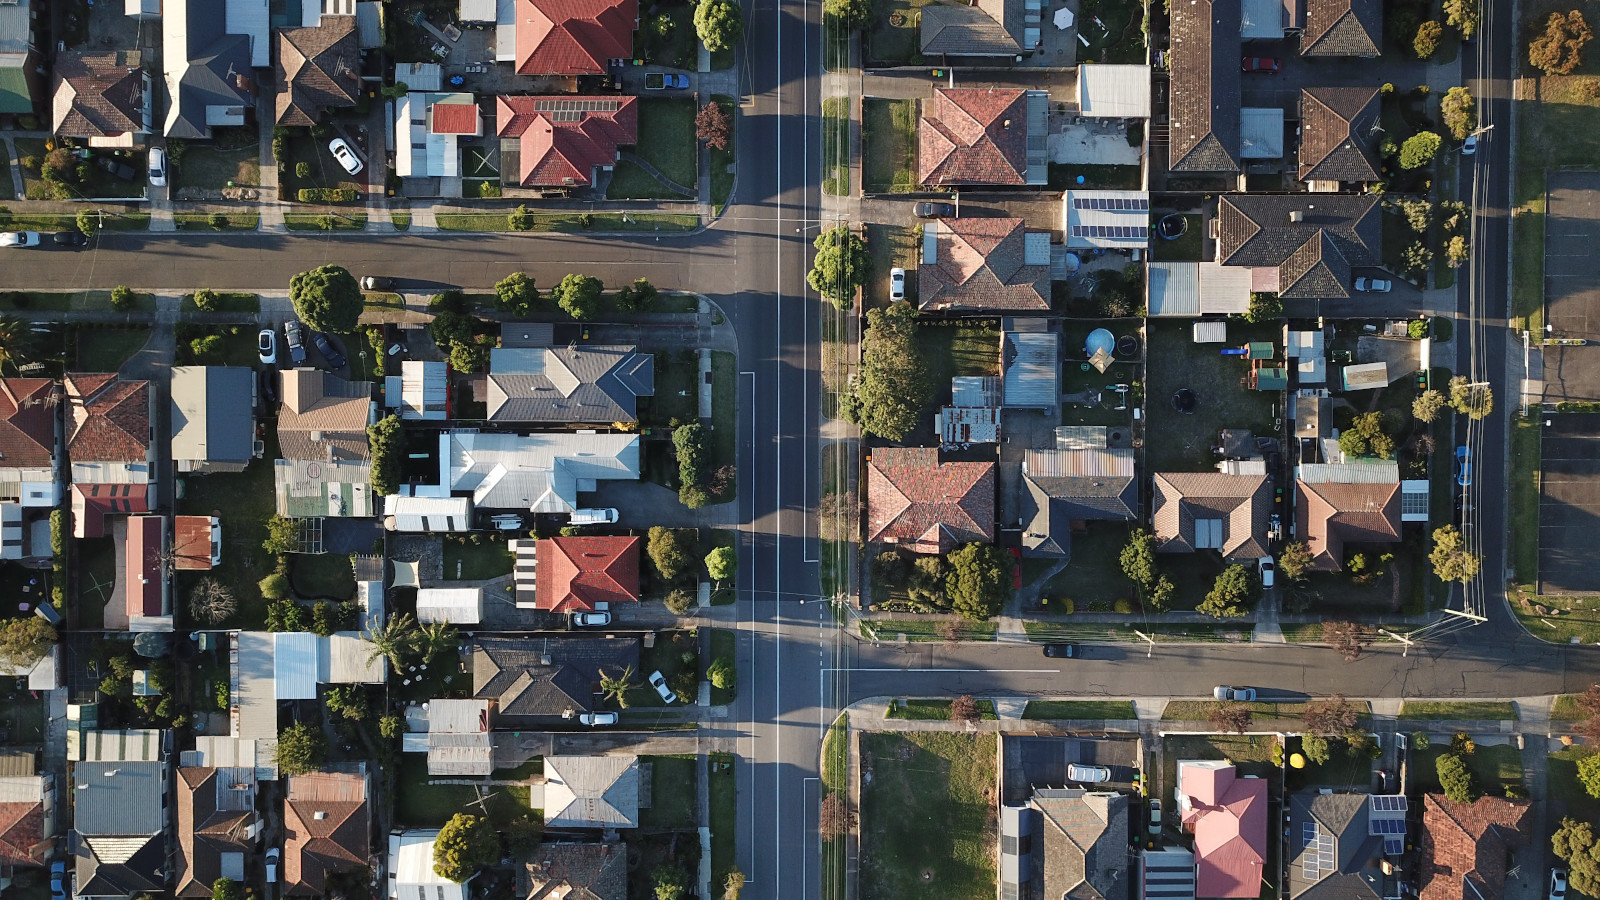 A report published by Middleburg Communities predicts a sharp rise in rental housing demands by 2025 due to declining homeownership in the United States. In addition to demographic variables, the study points out tight lending, lower median net worth, and inertia as the driving factors behind this trend.